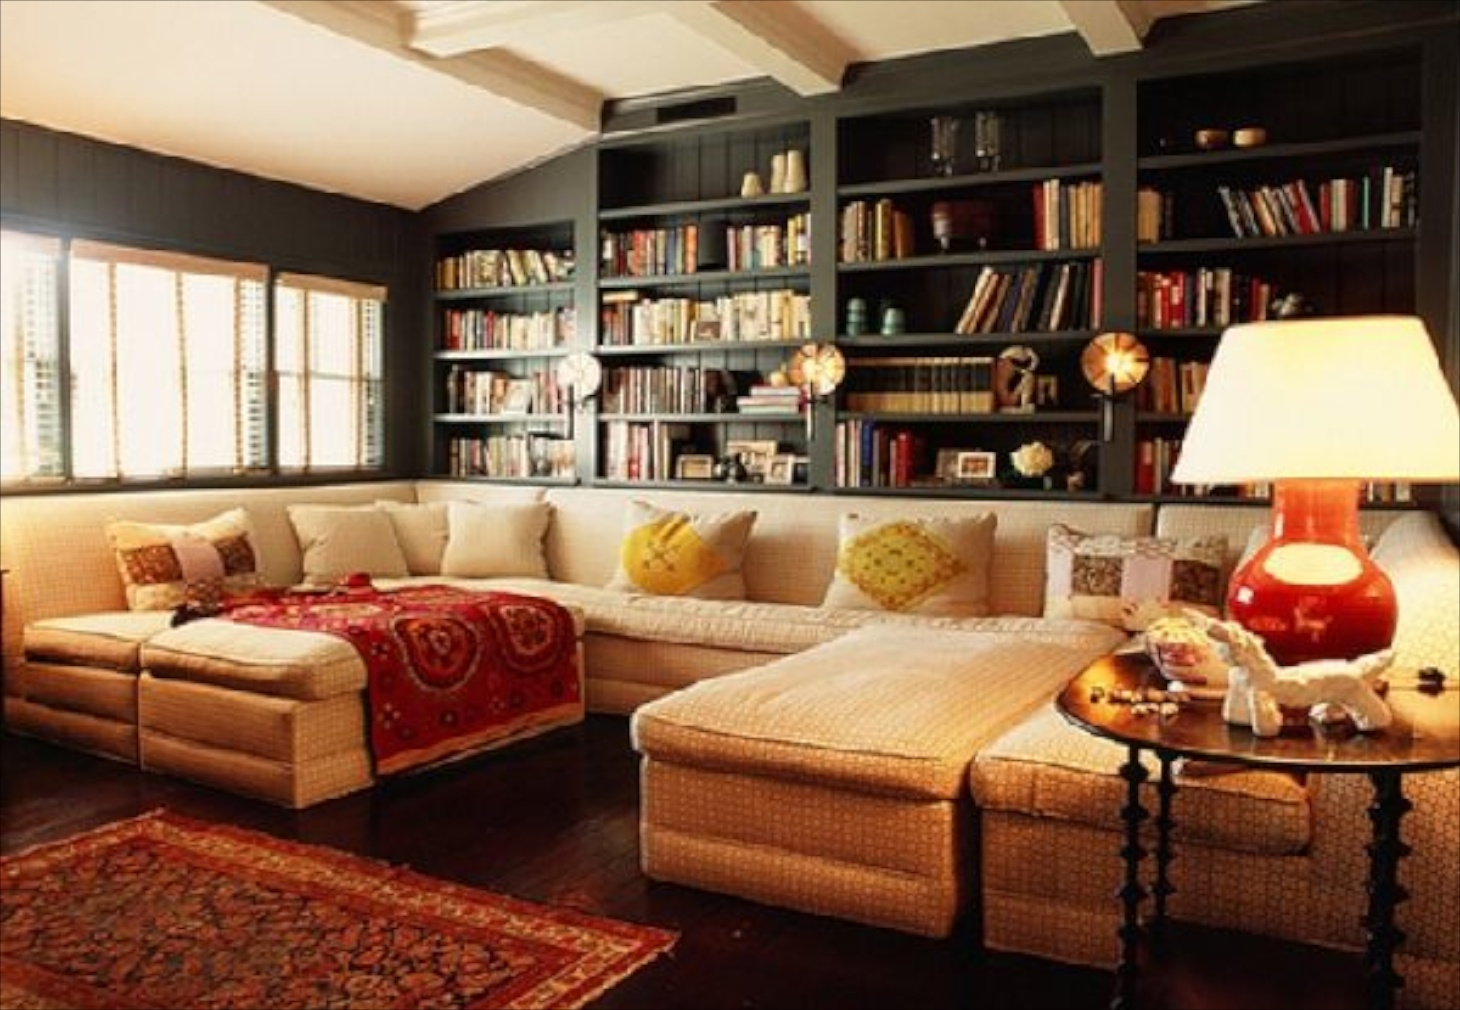 23 sofas and bookcase ideas in cozy living room design for Living room ideas video